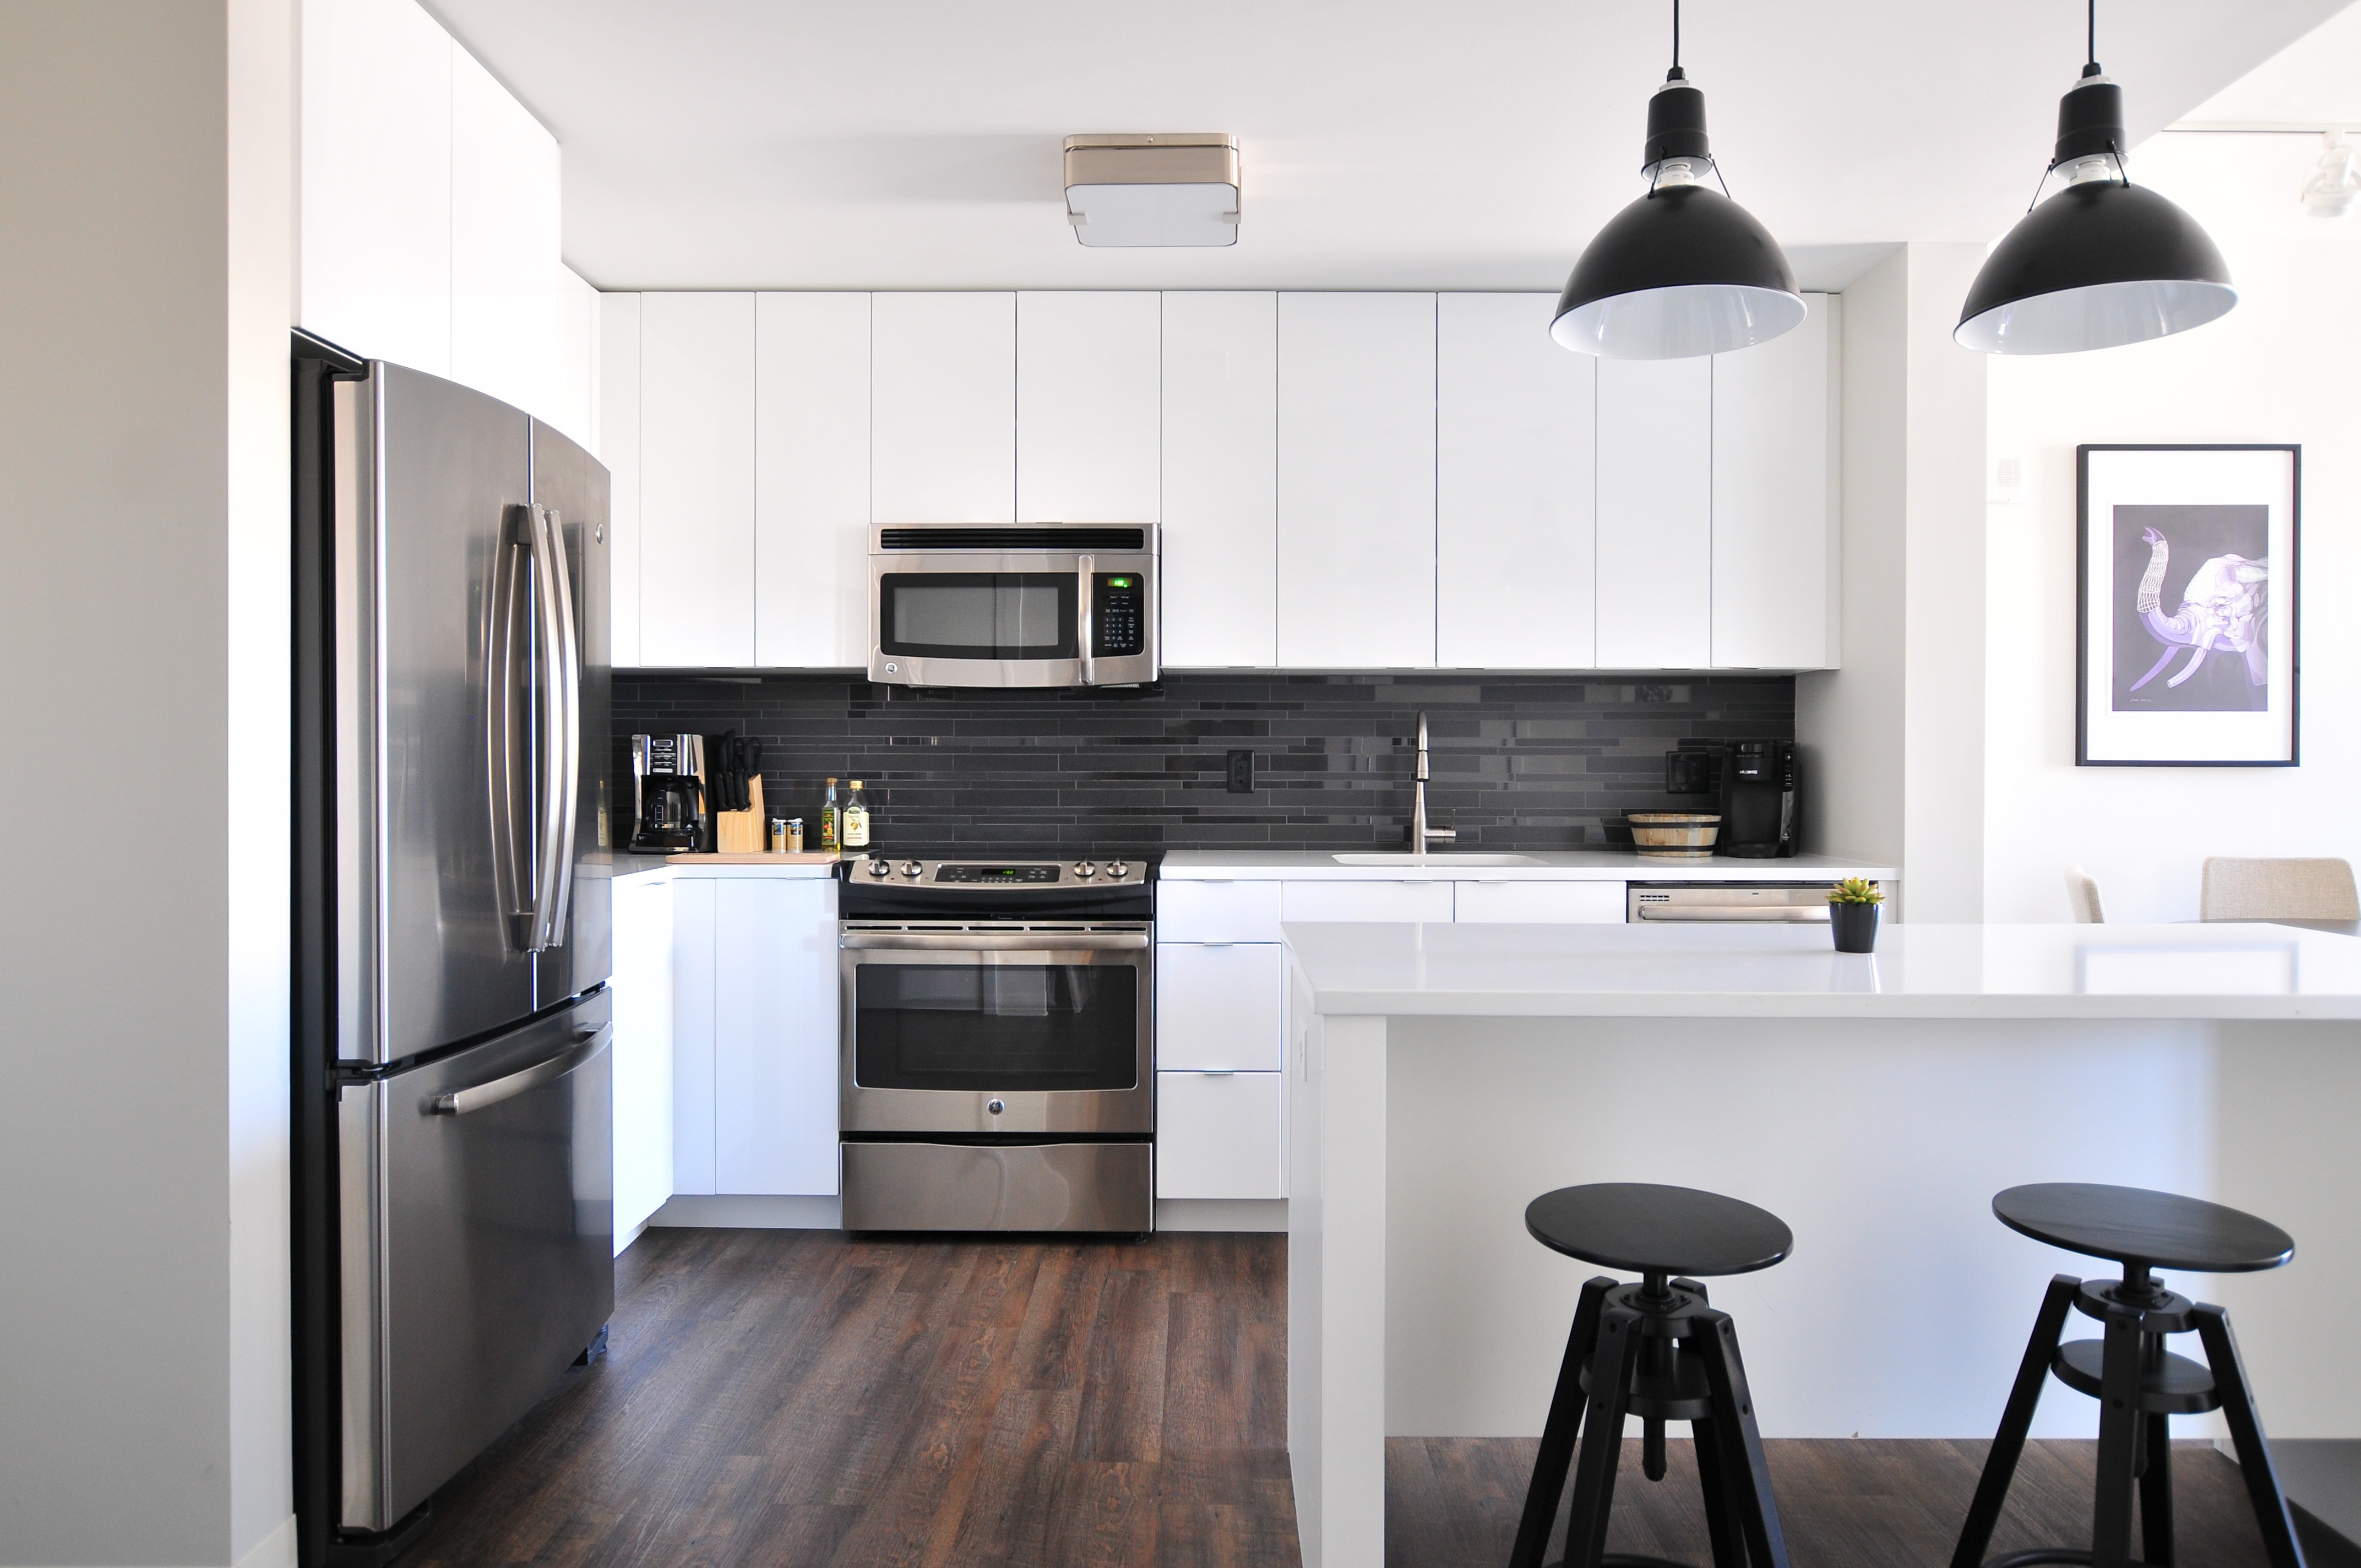 Guide to packing your kitchen for relocation